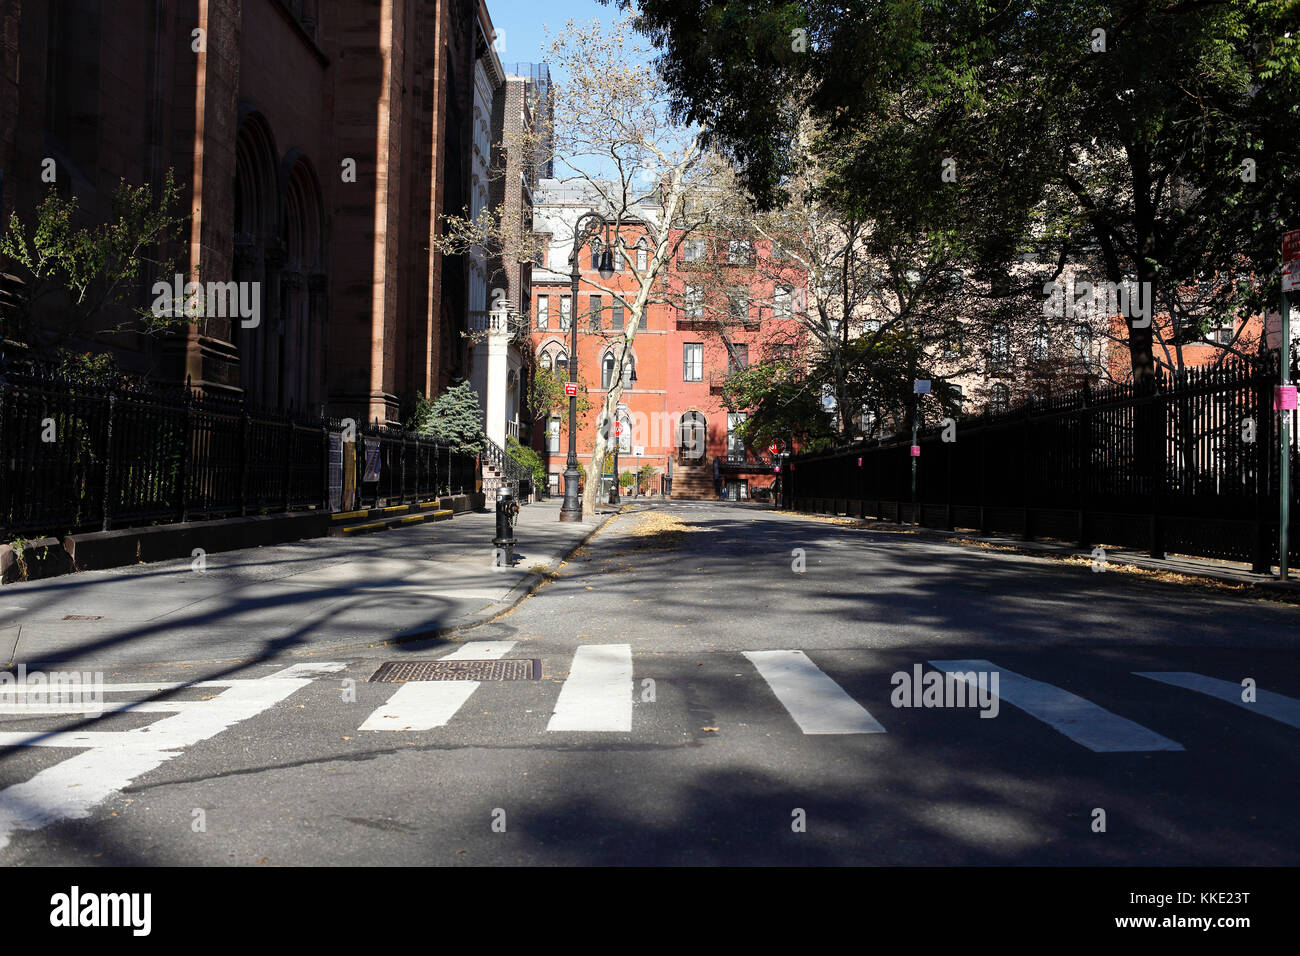 Empty street and crosswalk at Stuyvesant Square Park in New York City - Stock Image